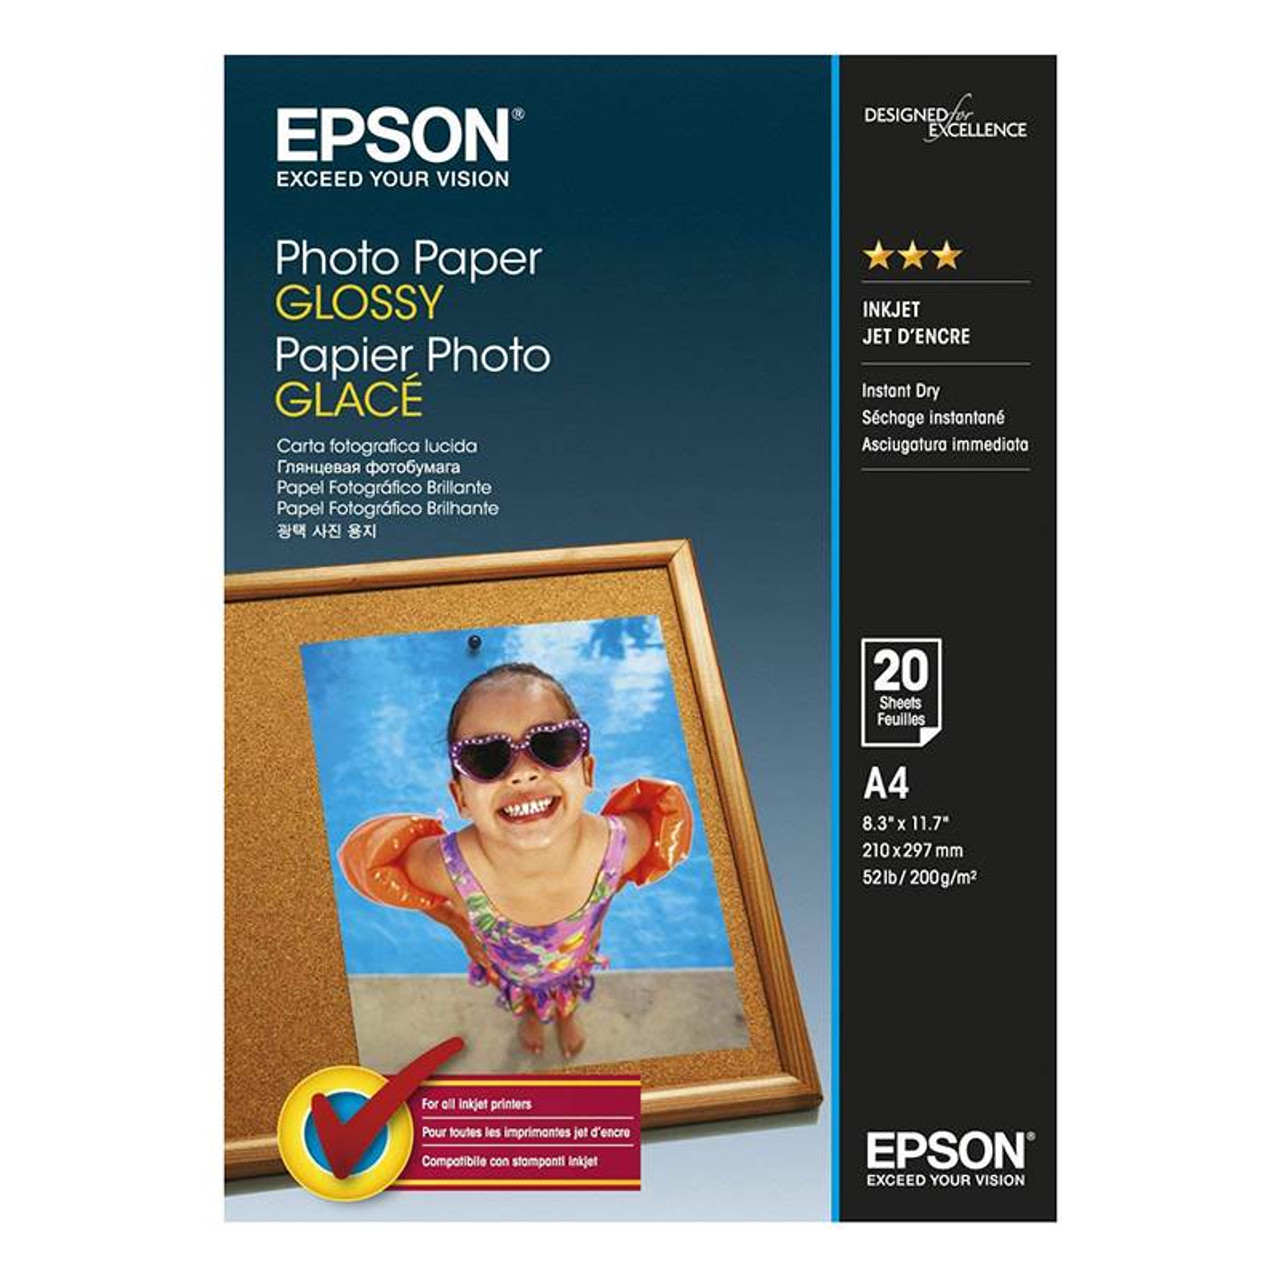 Image for Epson A4 Glossy Photo Paper 20 sheets CX Computer Superstore